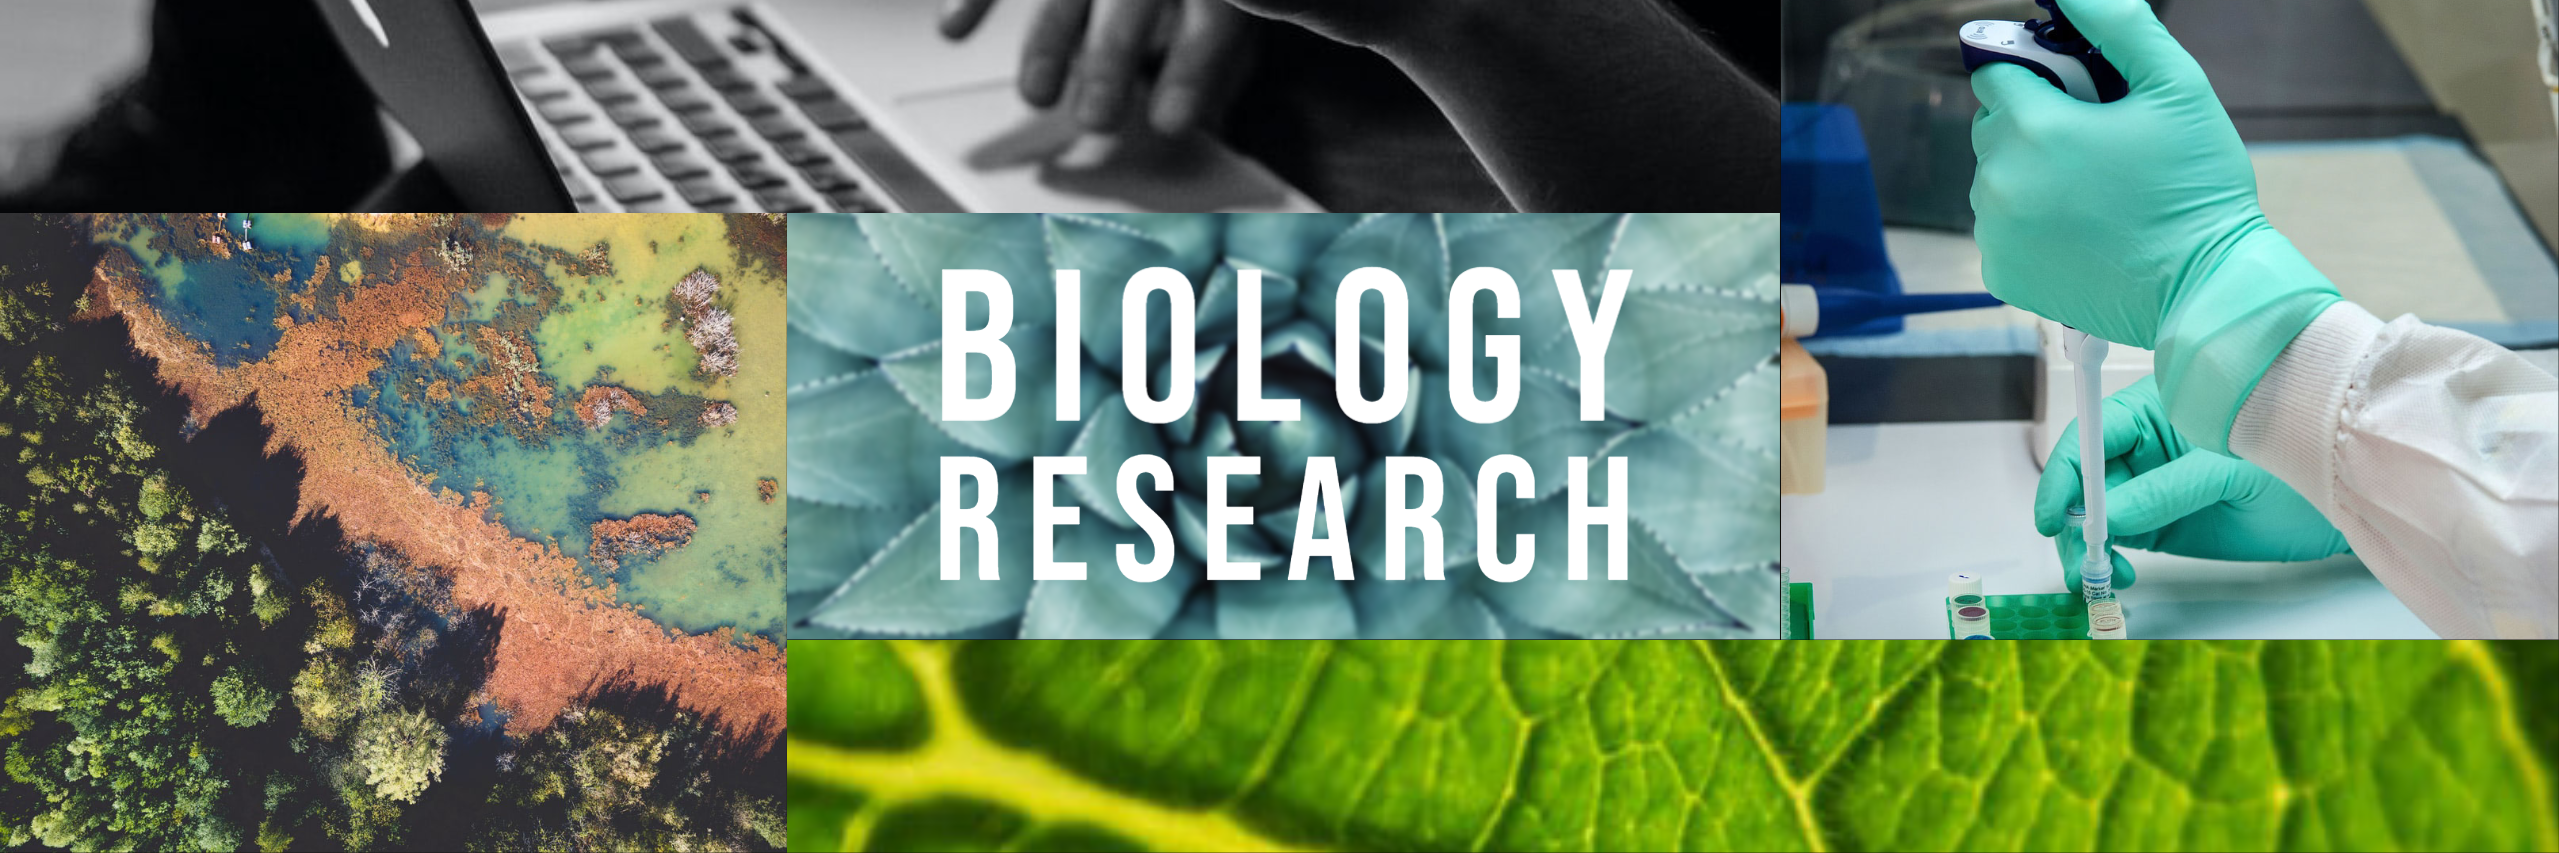 Banner that says Biology Research